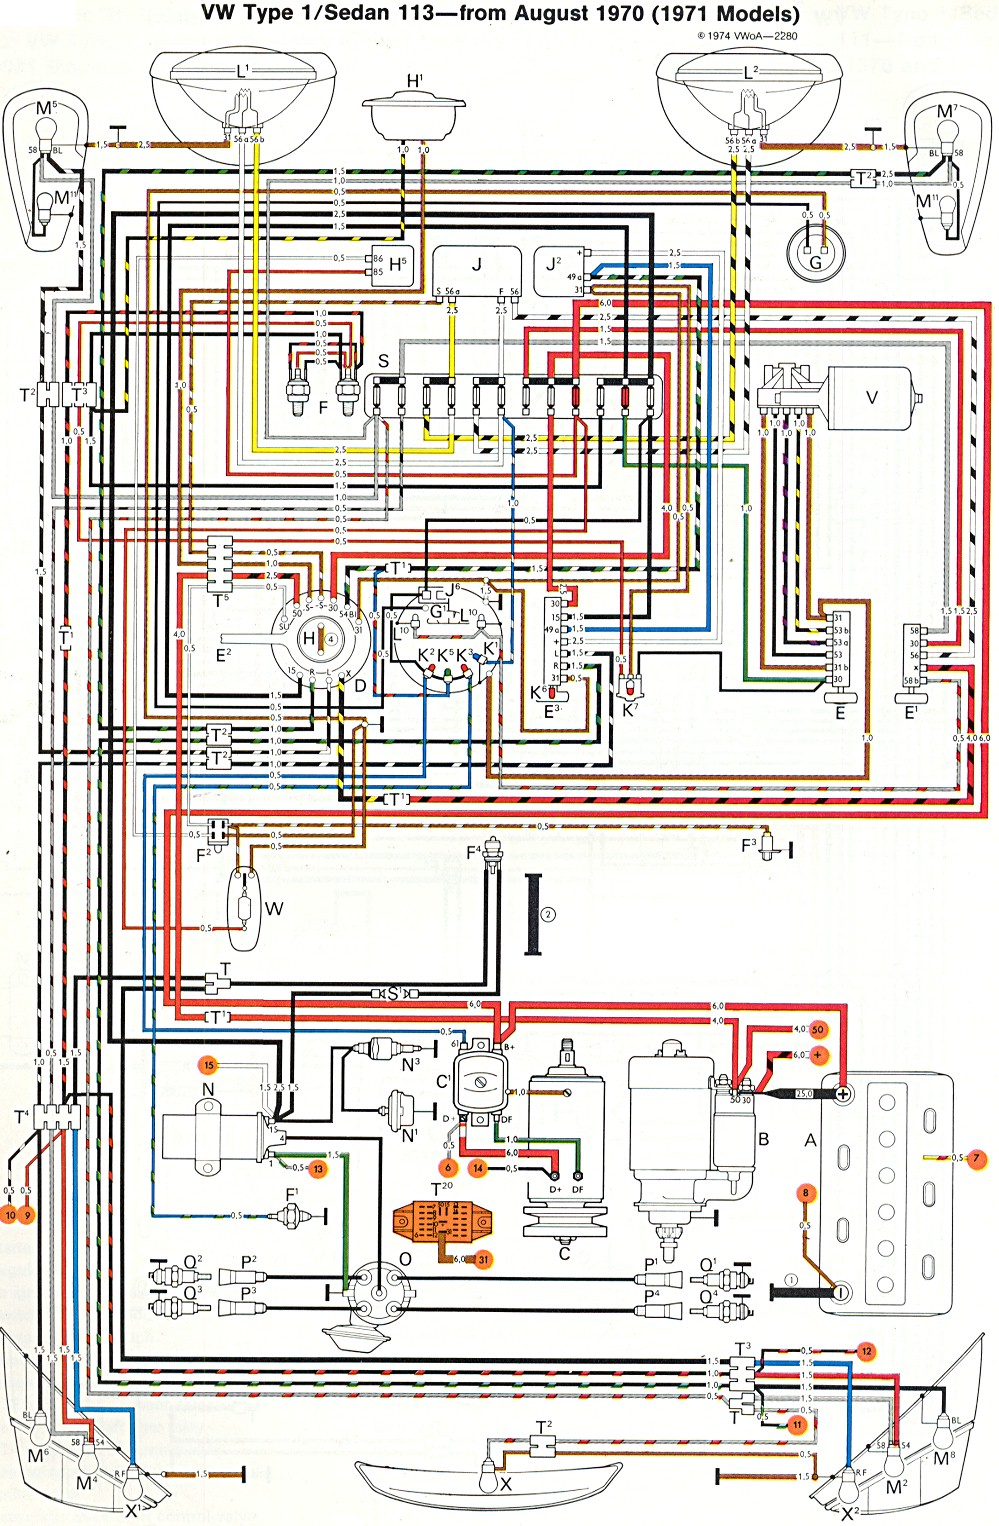 bug_super_71 1971 super beetle wiring diagram thegoldenbug com 1973 vw beetle wiring diagram at virtualis.co